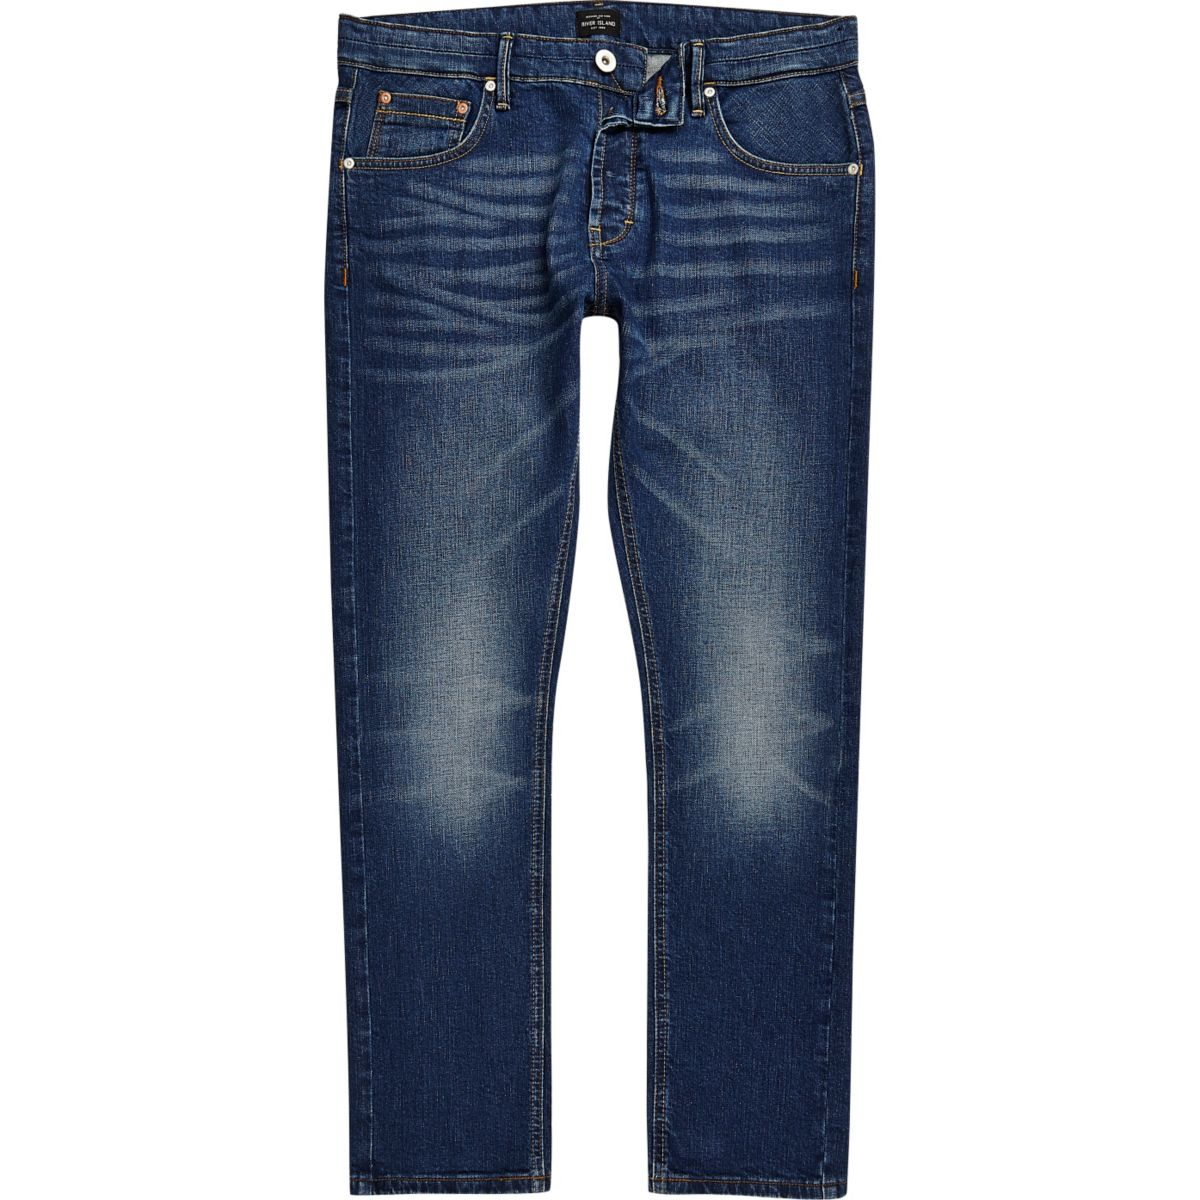 Mens Mid Blue wash fade skinny Sid jeans River Island Buy Cheap Perfect 2018 Unisex For Sale High Quality Sale Online Cheap Sale 5jcGR7rZ